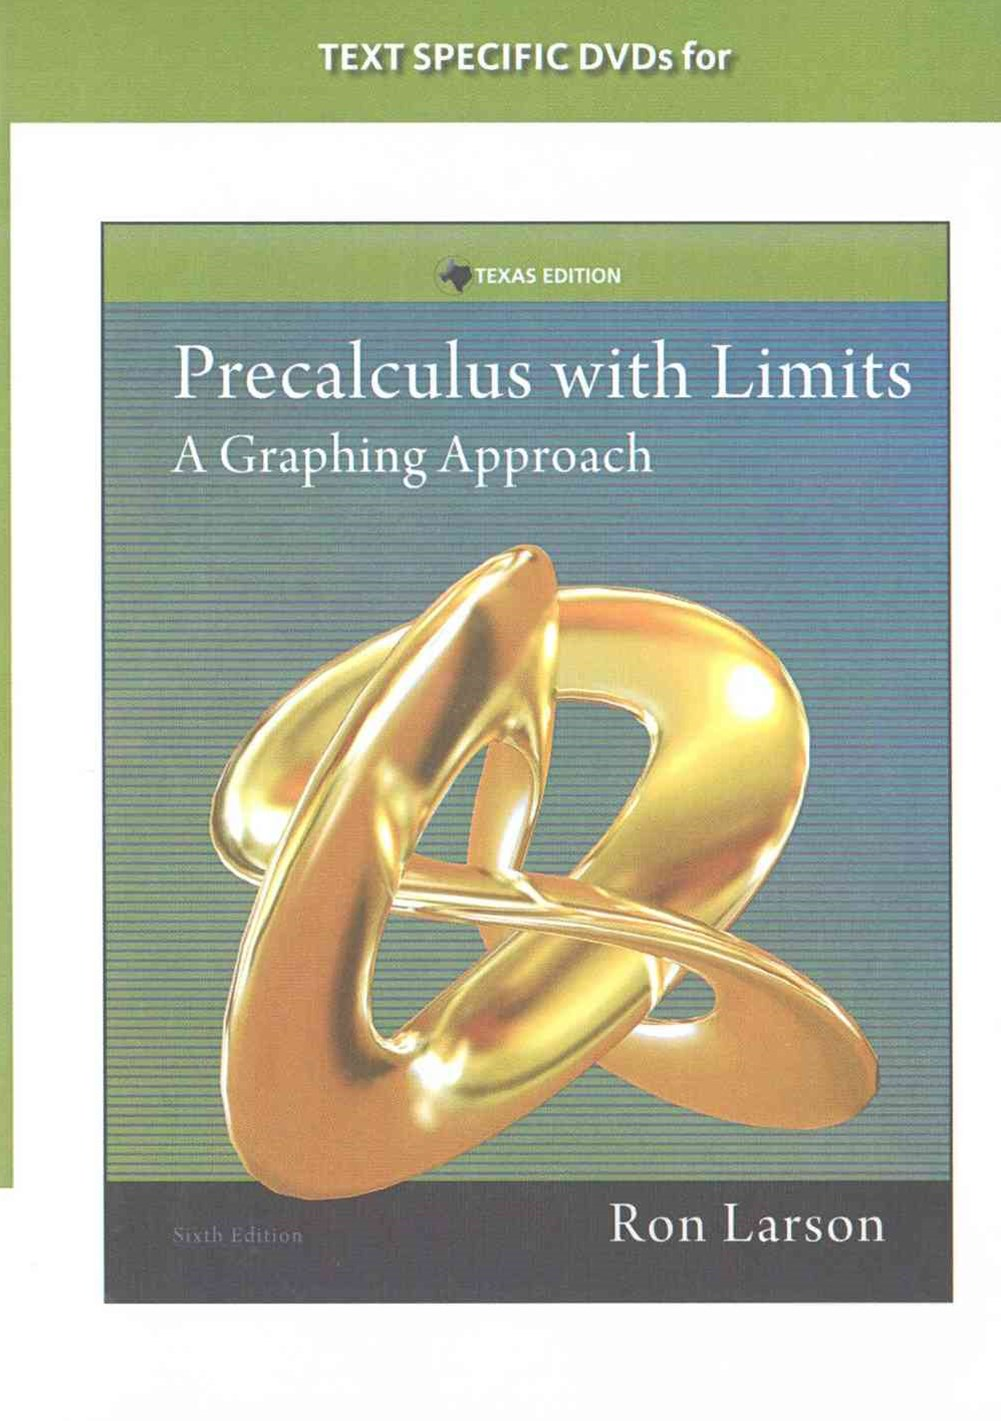 DVD Lecture Videos for Larson's Precalculus with Limits: A Graphing  Approach, Texas Edition, 6th